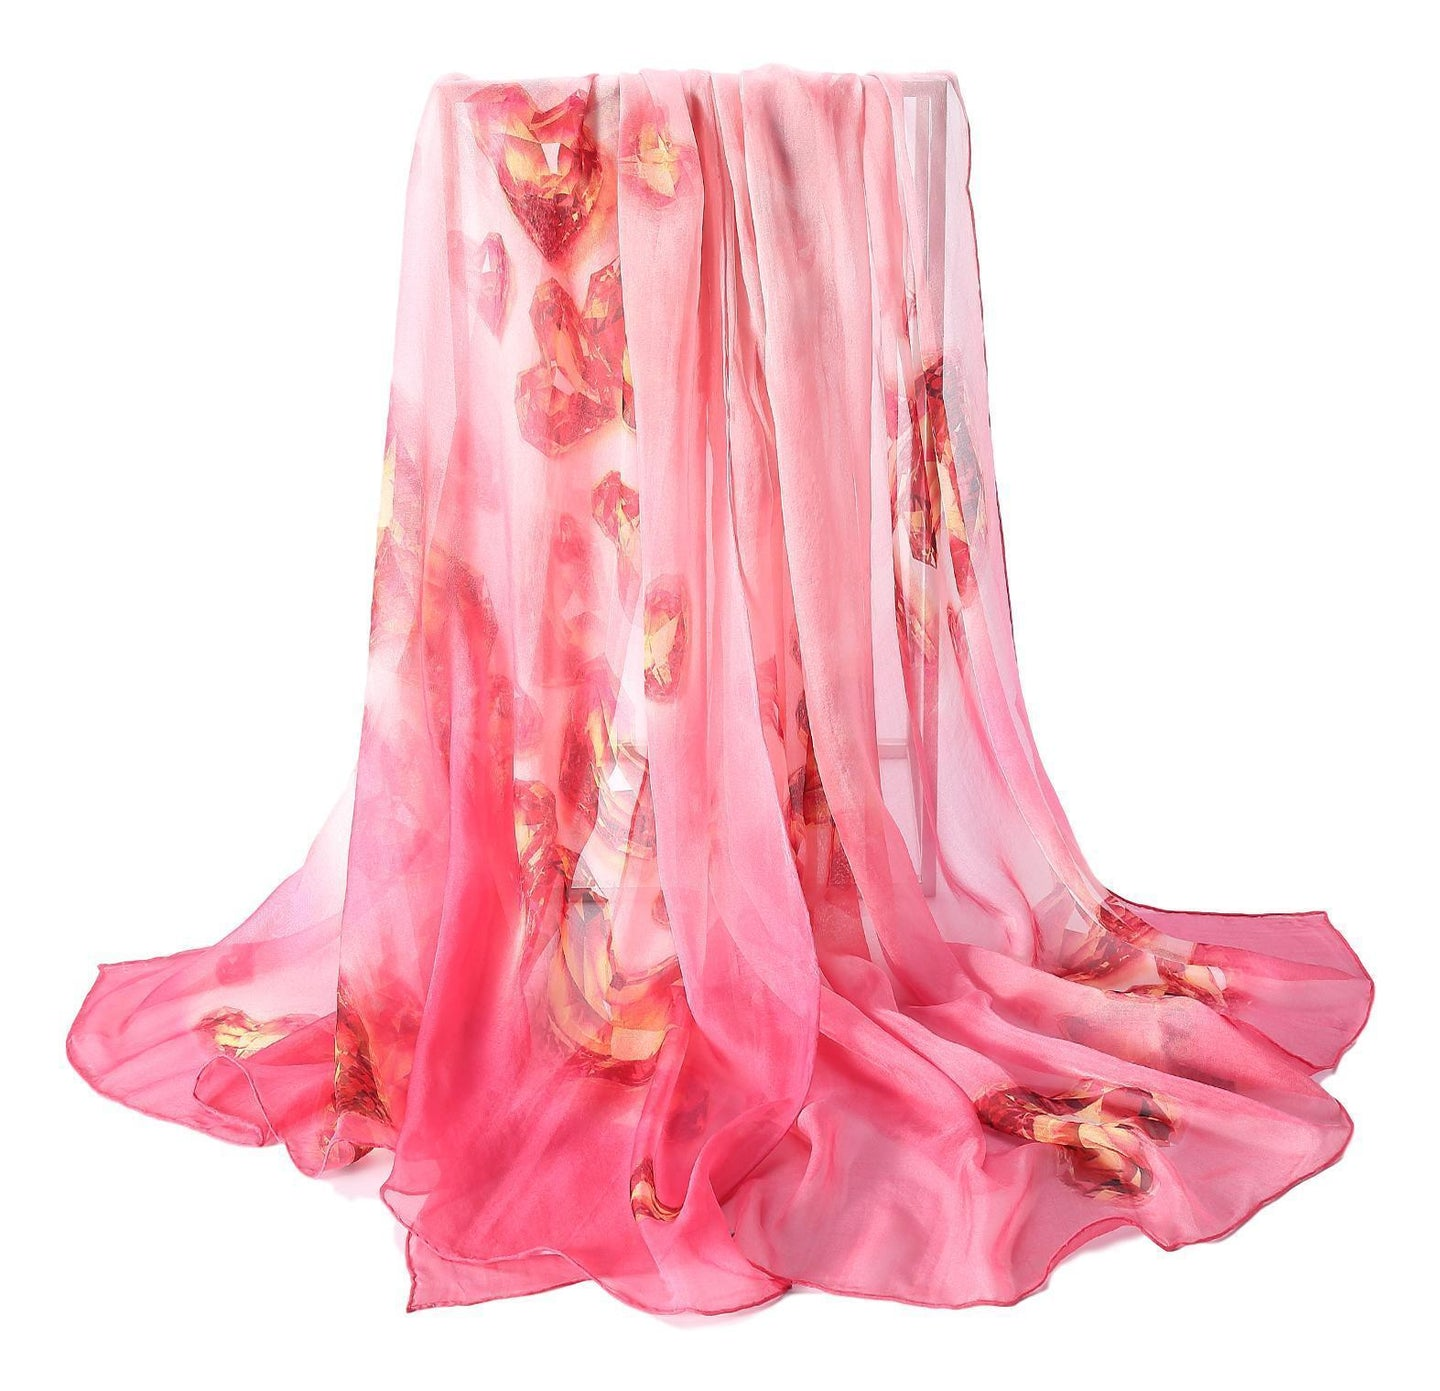 Pink Heart theme silk scarf